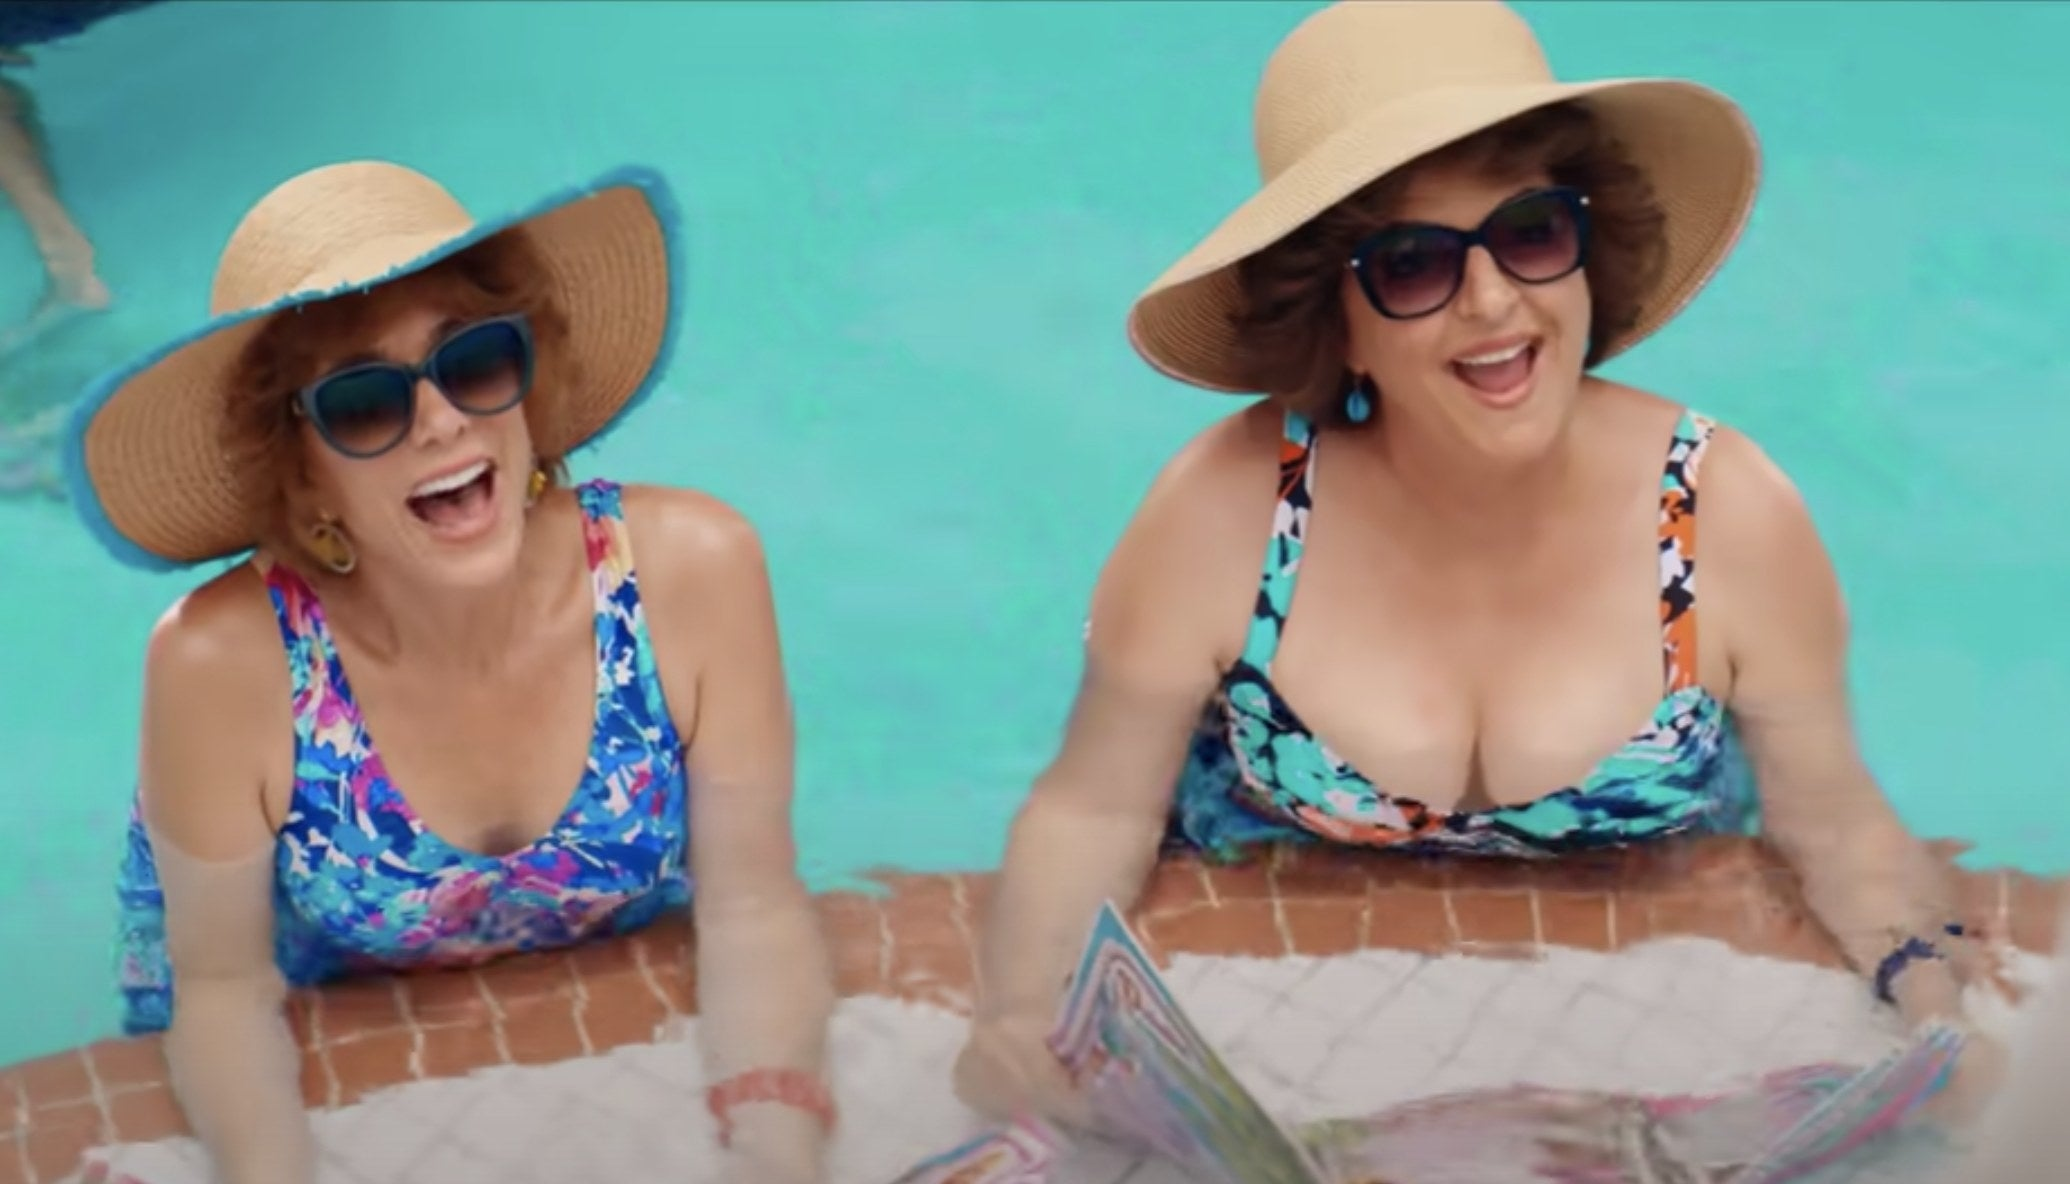 Barb and Star sit in a pool in multi colored bathing suits and large straw hats